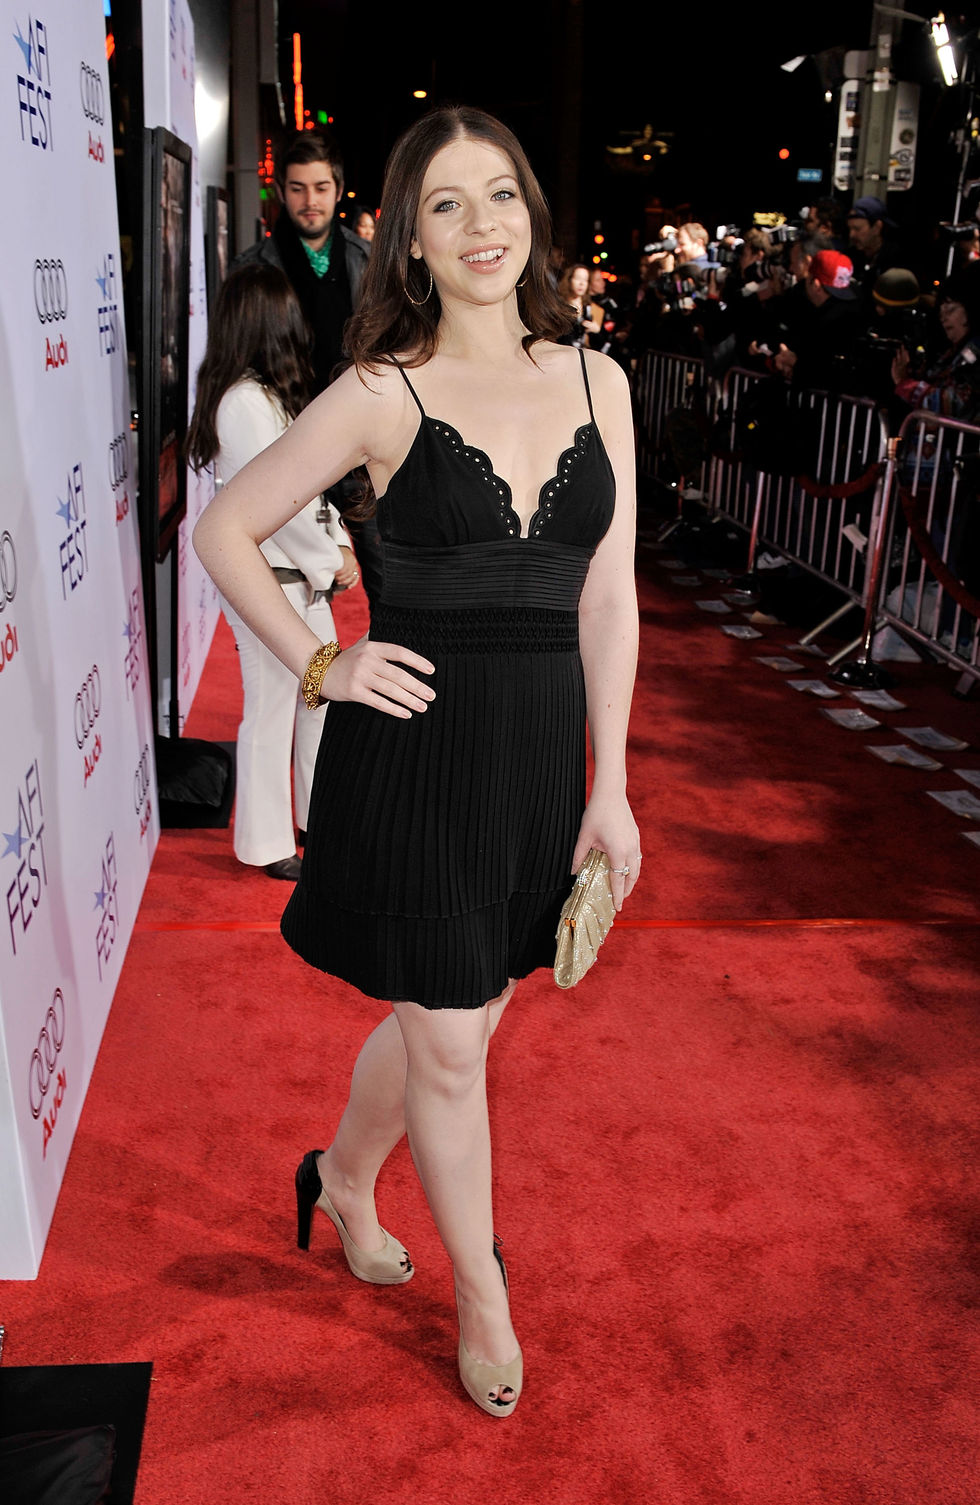 michelle-trachtenberg-defiance-screening-in-hollywood-01